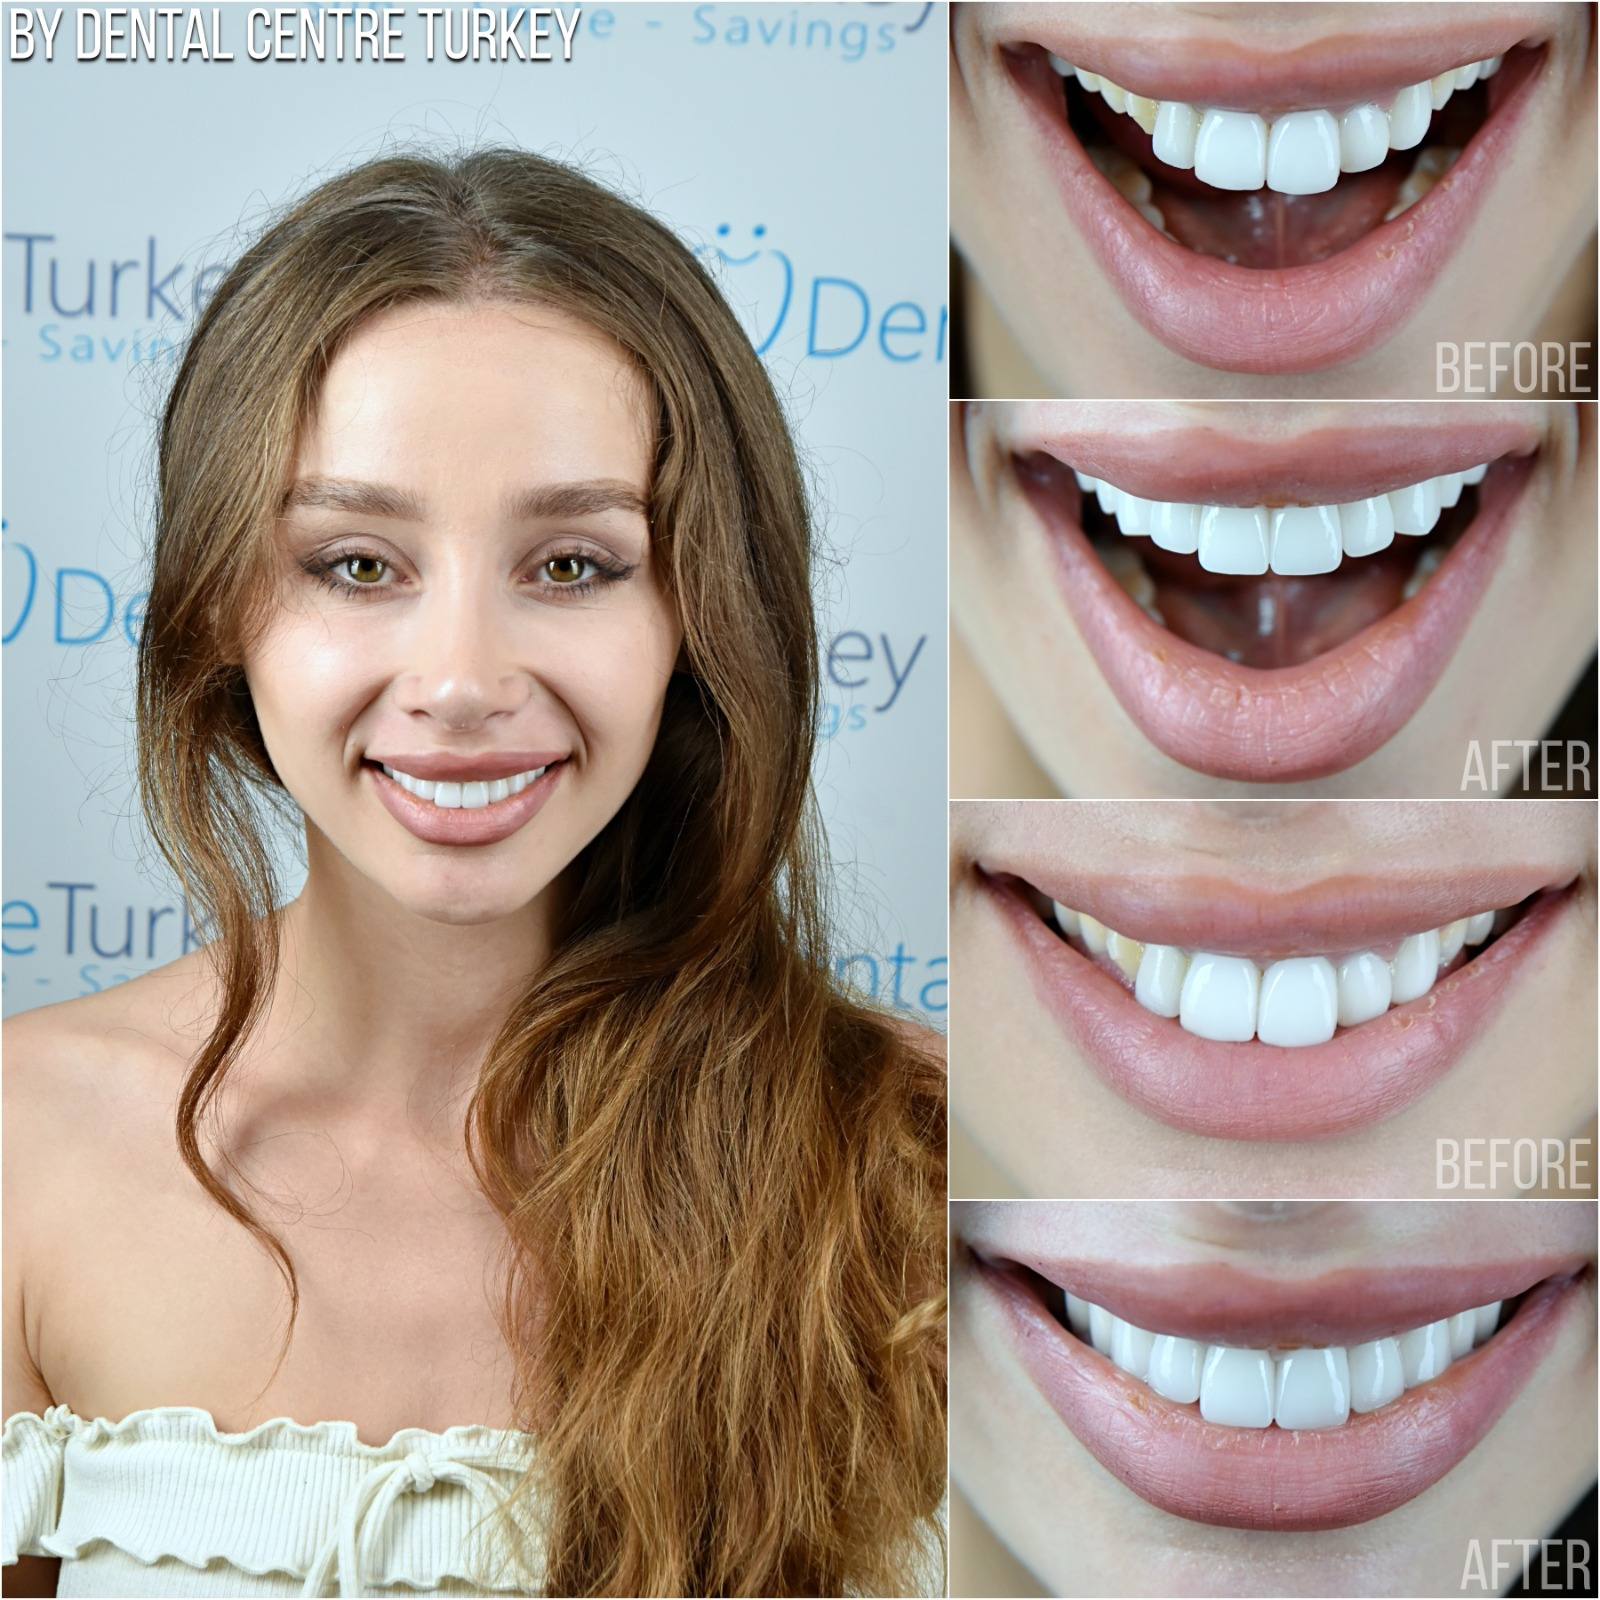 Dental Centre Turkey - Before-After 8